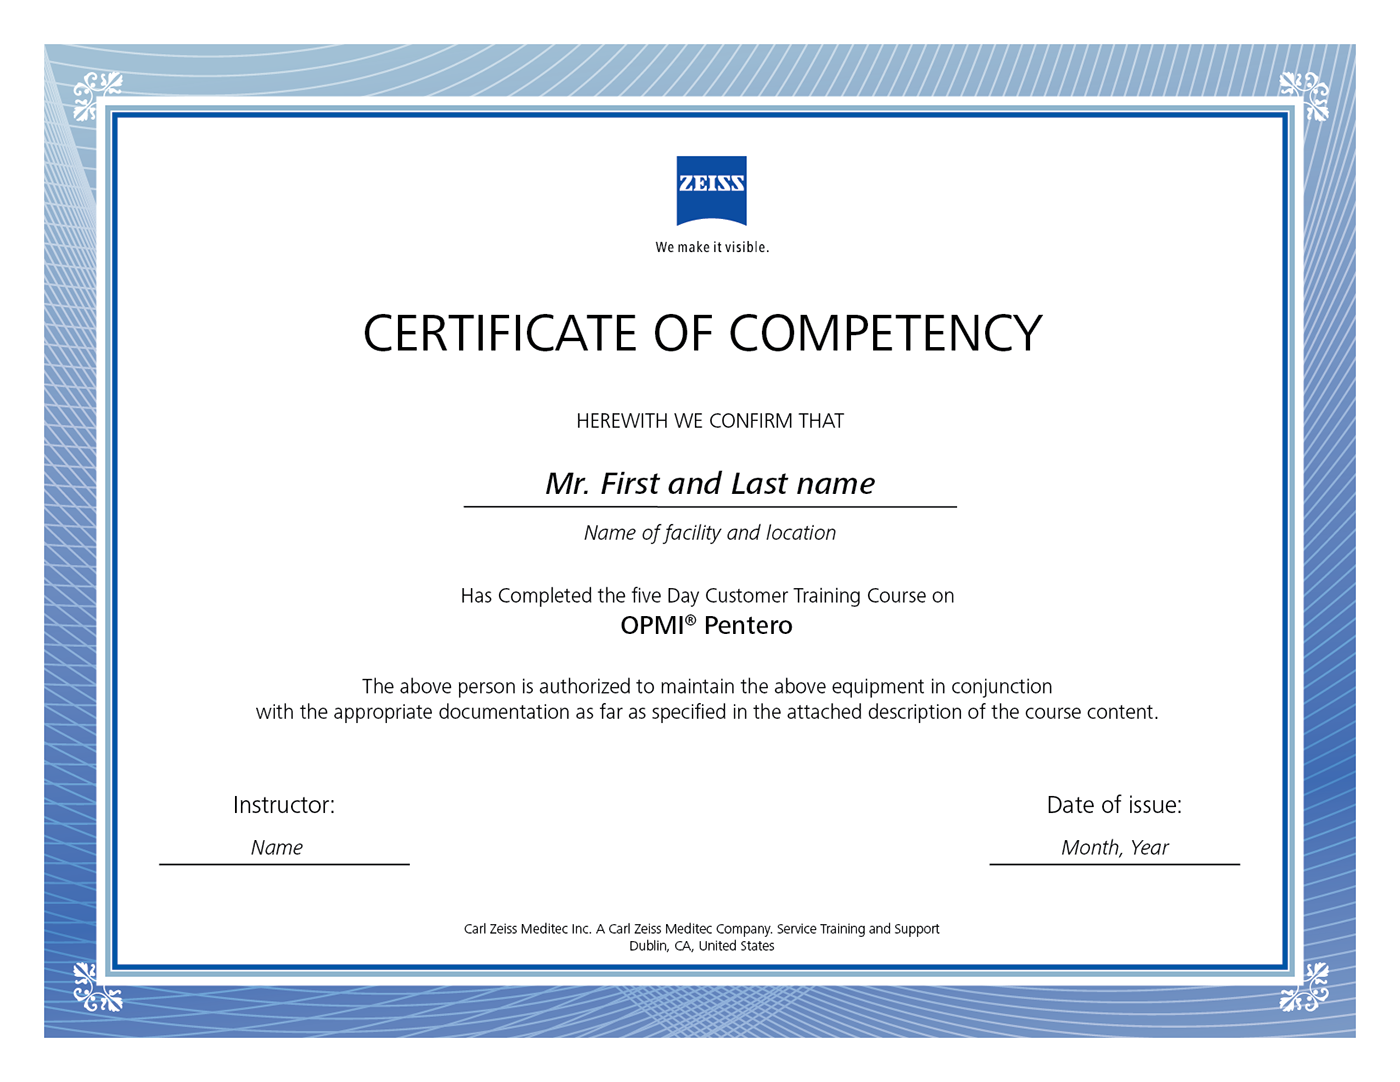 competency certificate template 28 images certificate With competency certificate template